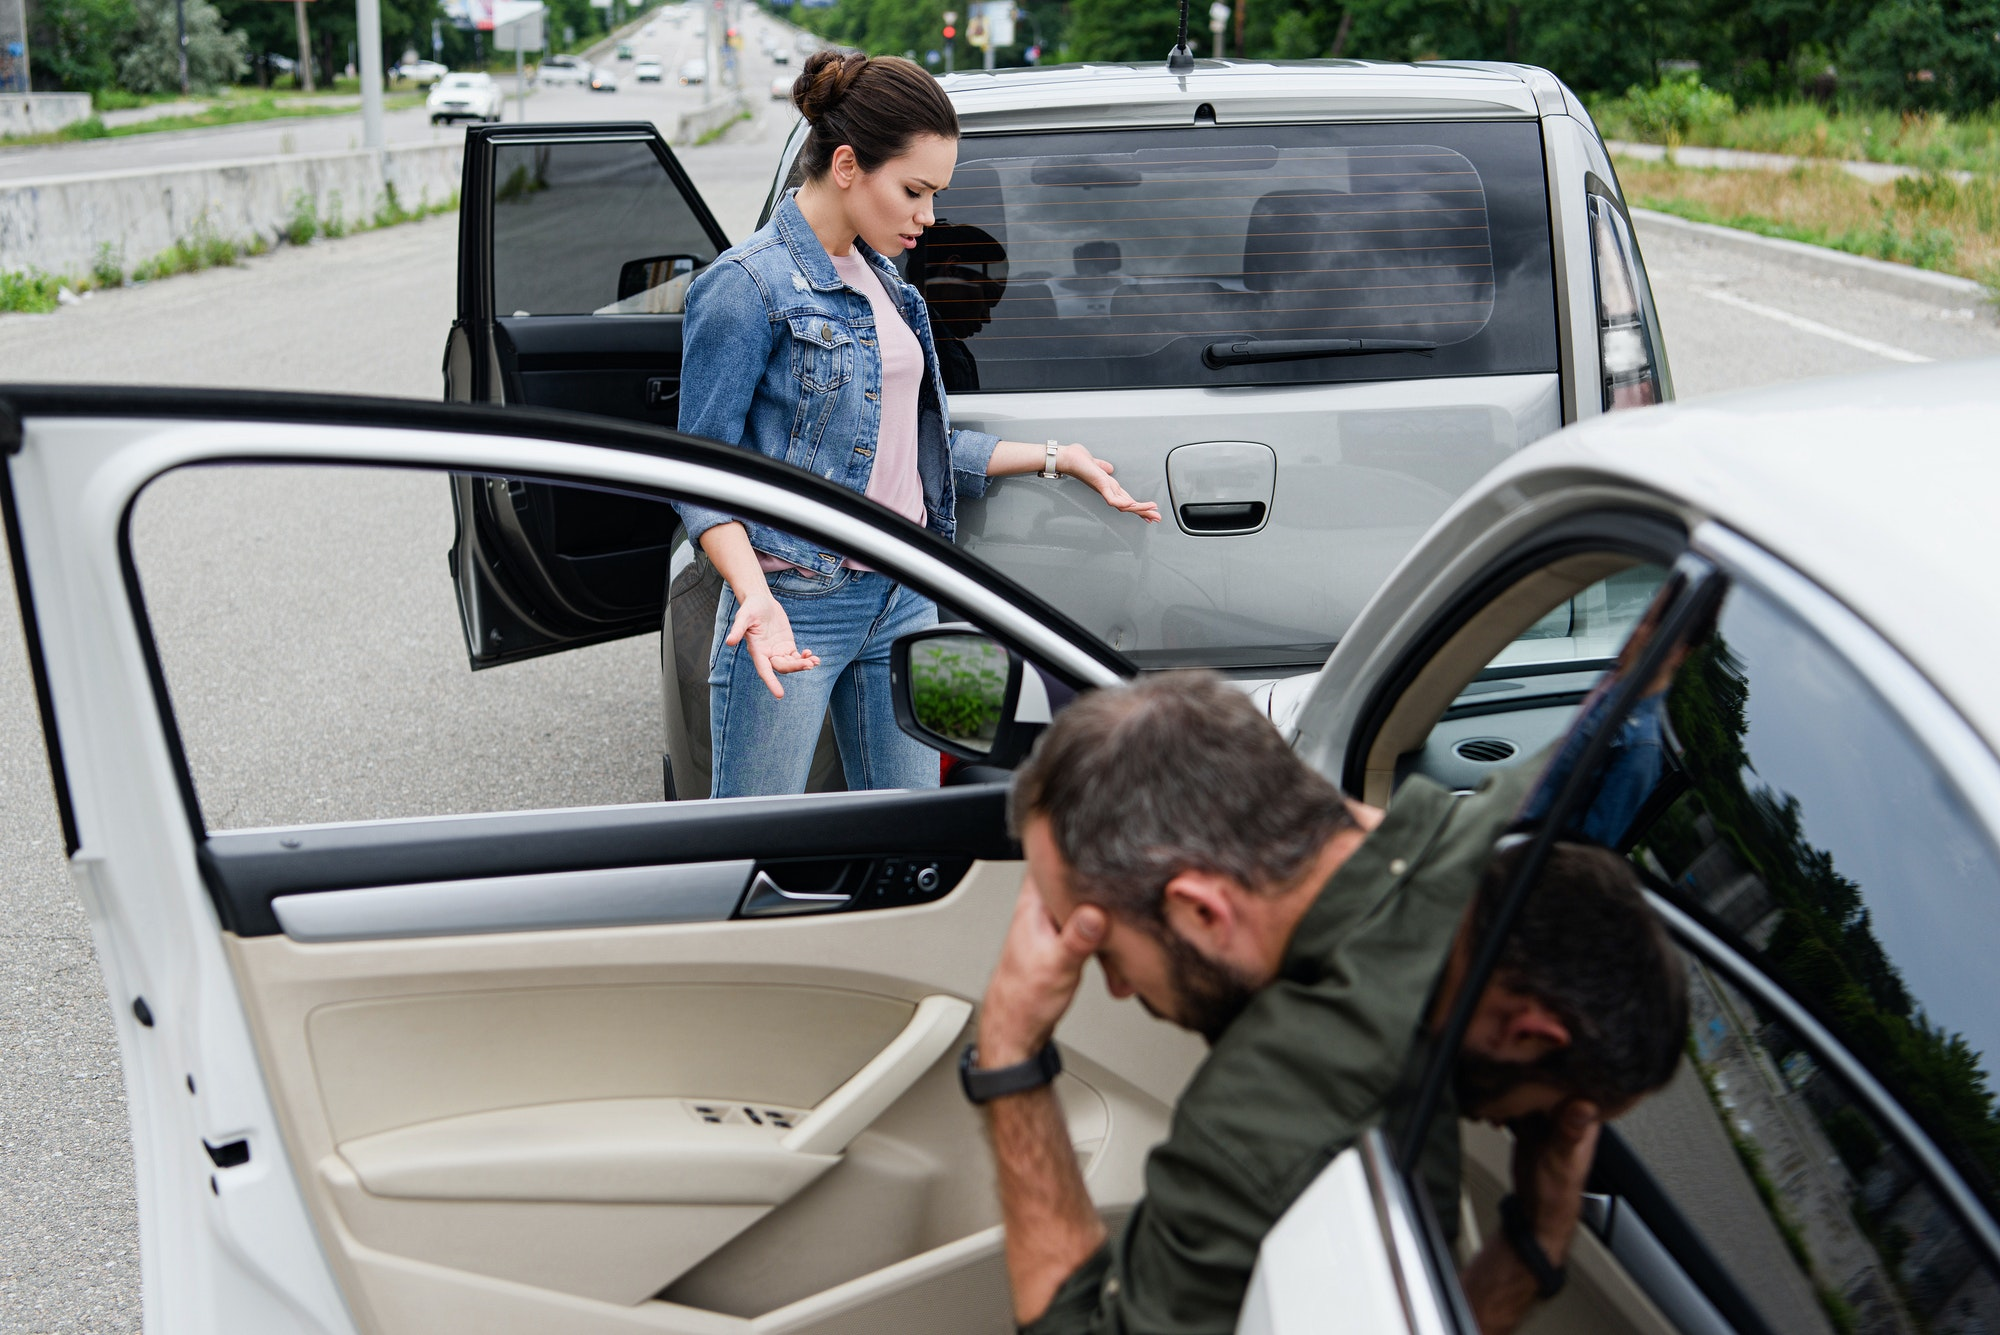 female driver looking at cars after car accident on road